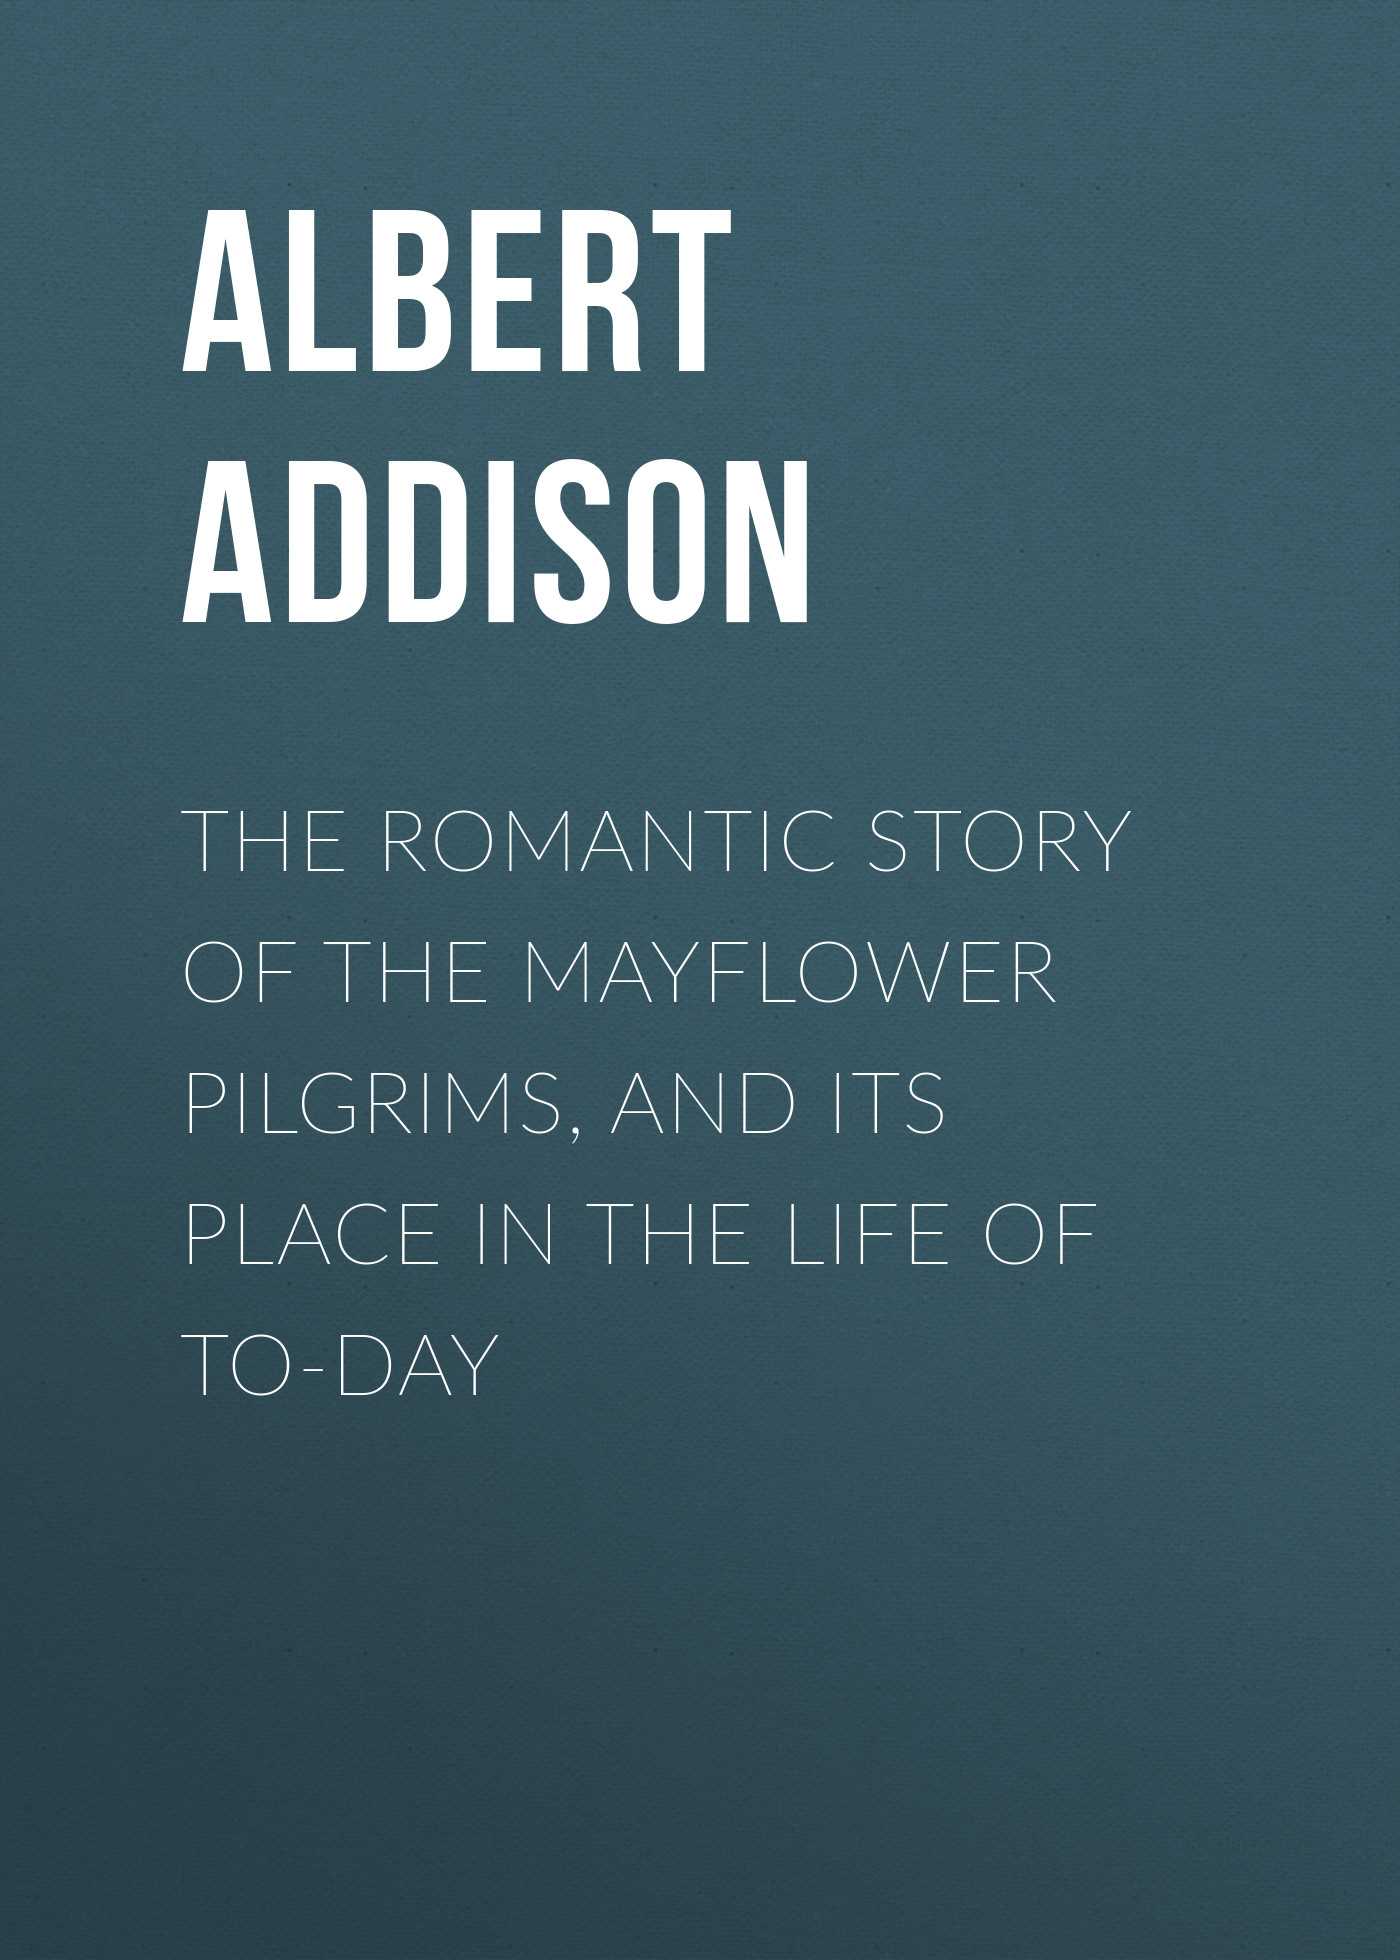 Addison Albert Christopher The Romantic Story of the Mayflower Pilgrims, and Its Place in the Life of To-day strange pilgrims